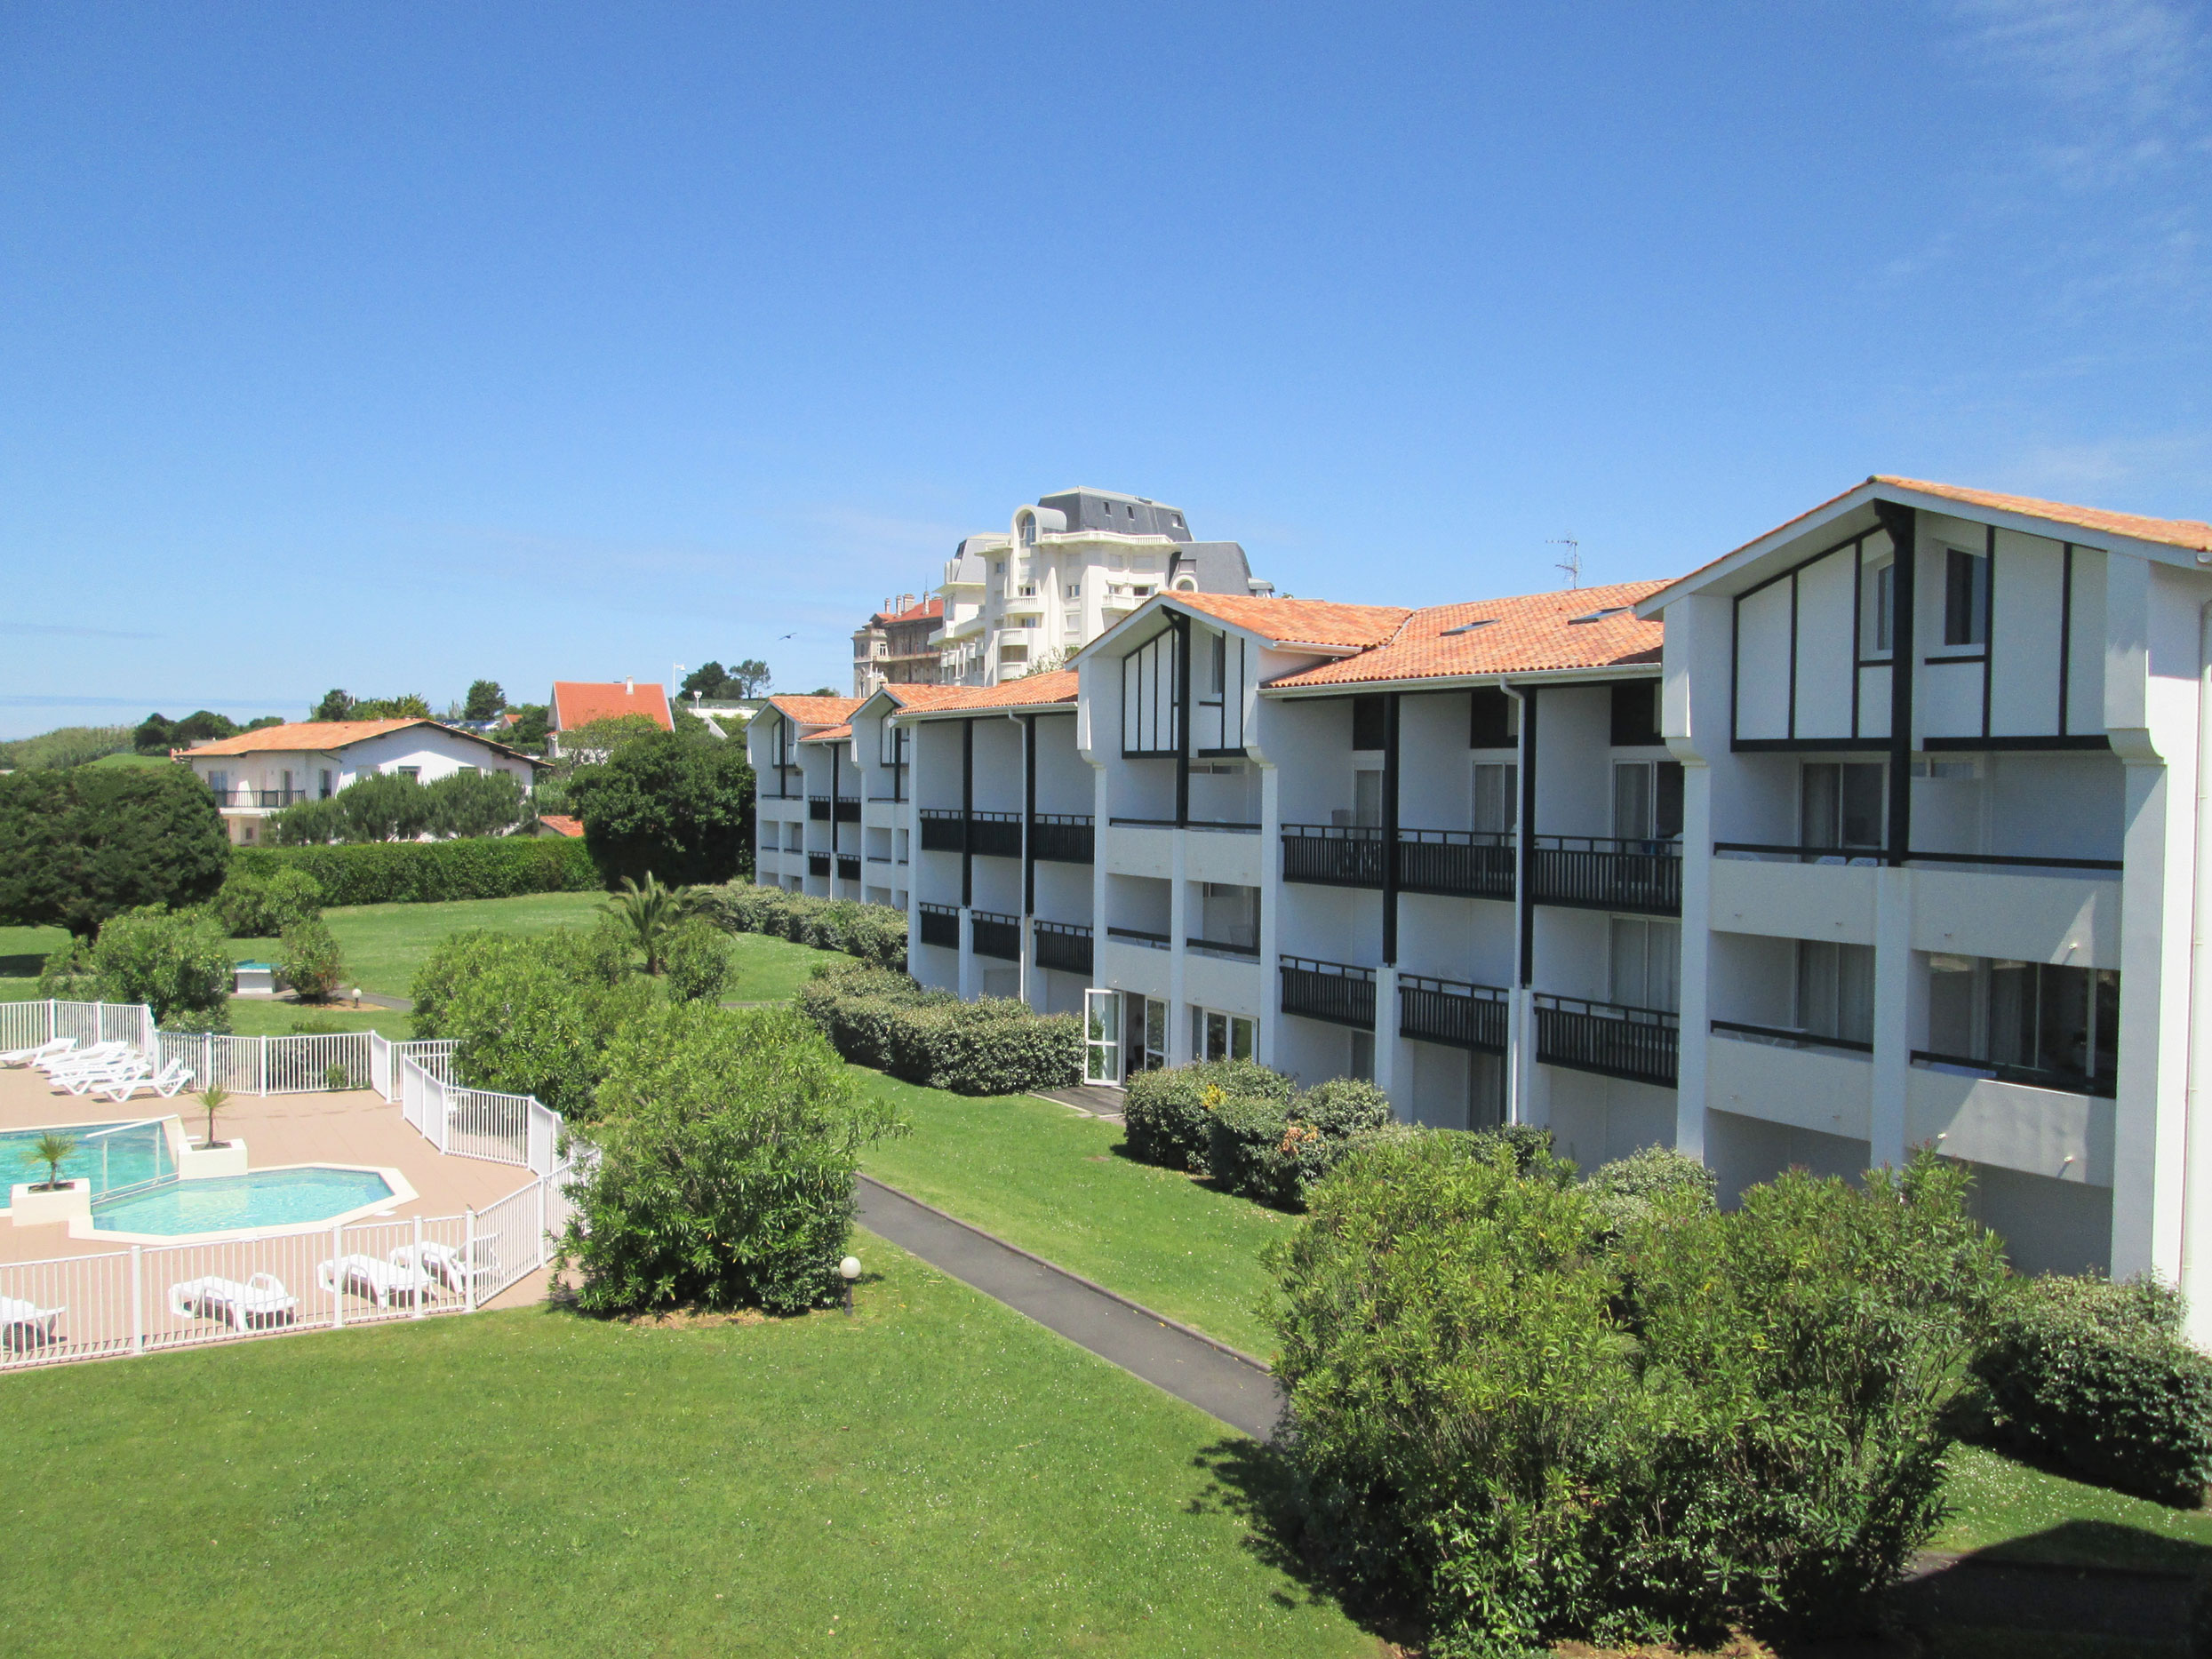 Residence Ilbaritz - Biarritz (Atlantic Pyrenees) - Pyrenees Collection Summer Holidays